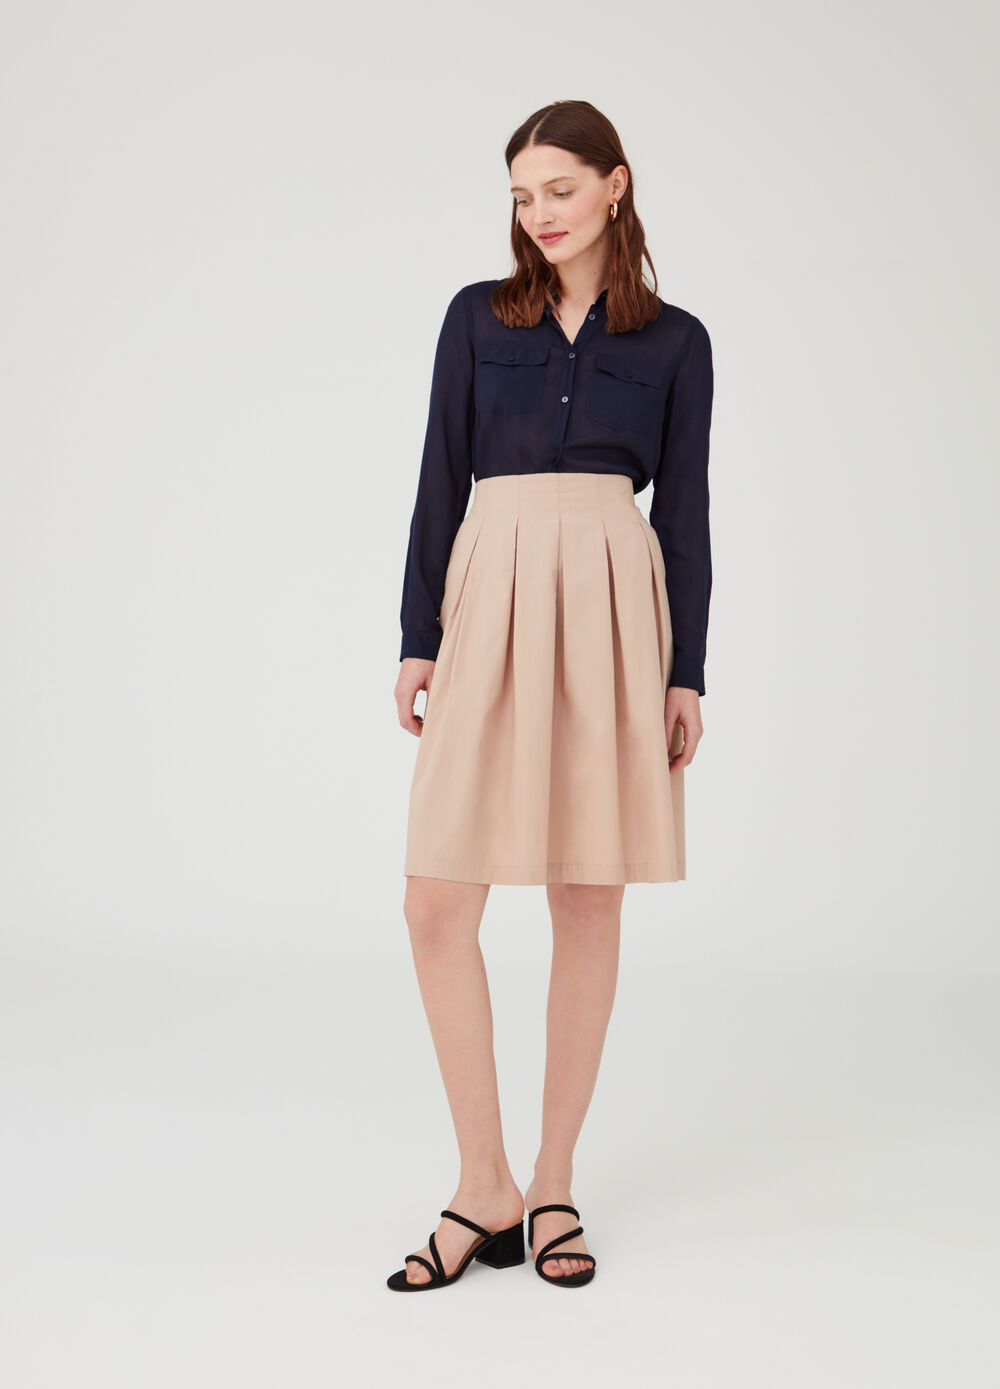 100% cotton pleated skirt with pockets